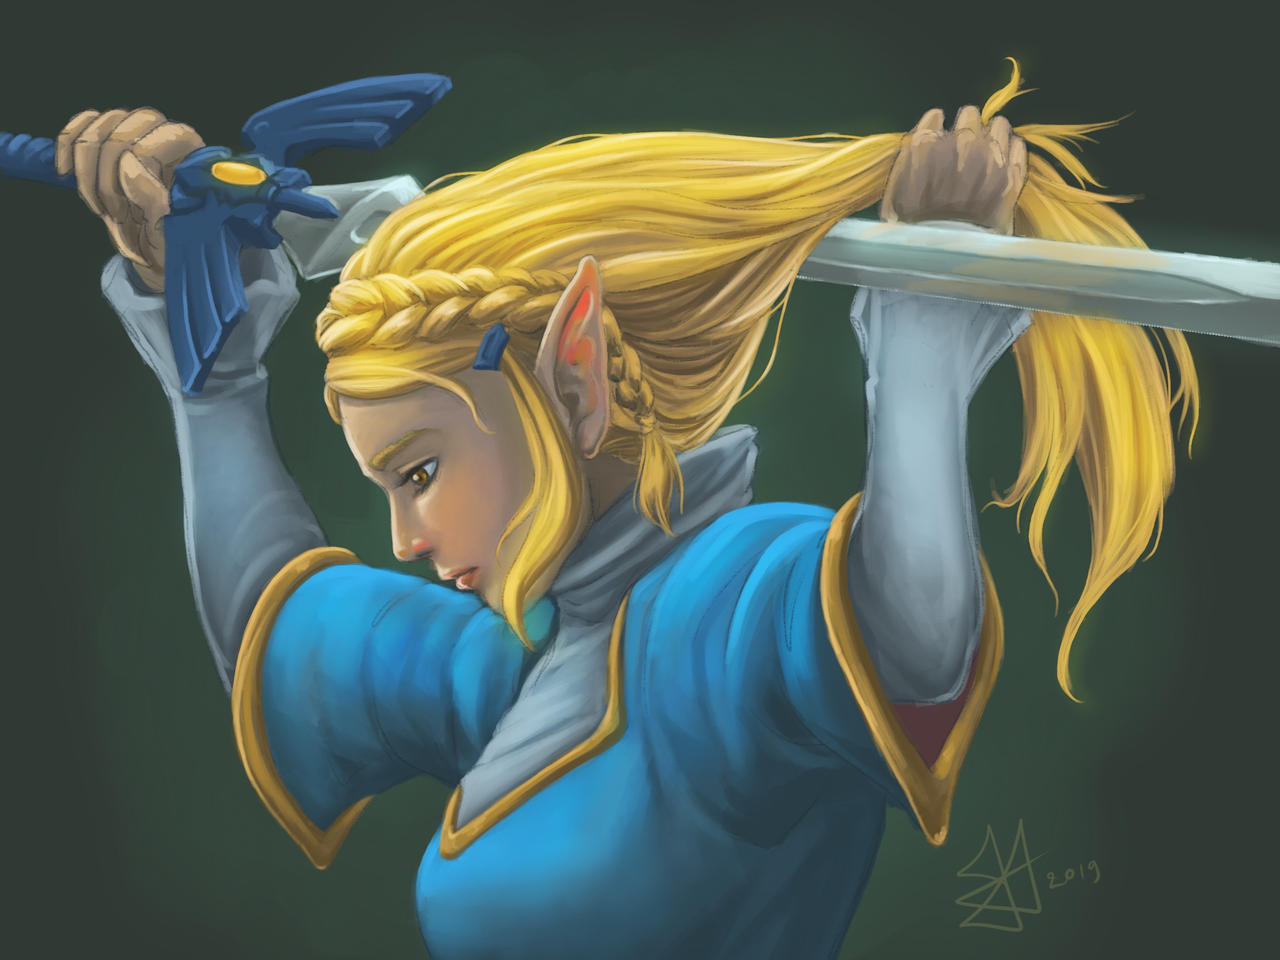 Zelda Botw Fanart By Xavy 027 On Deviantart